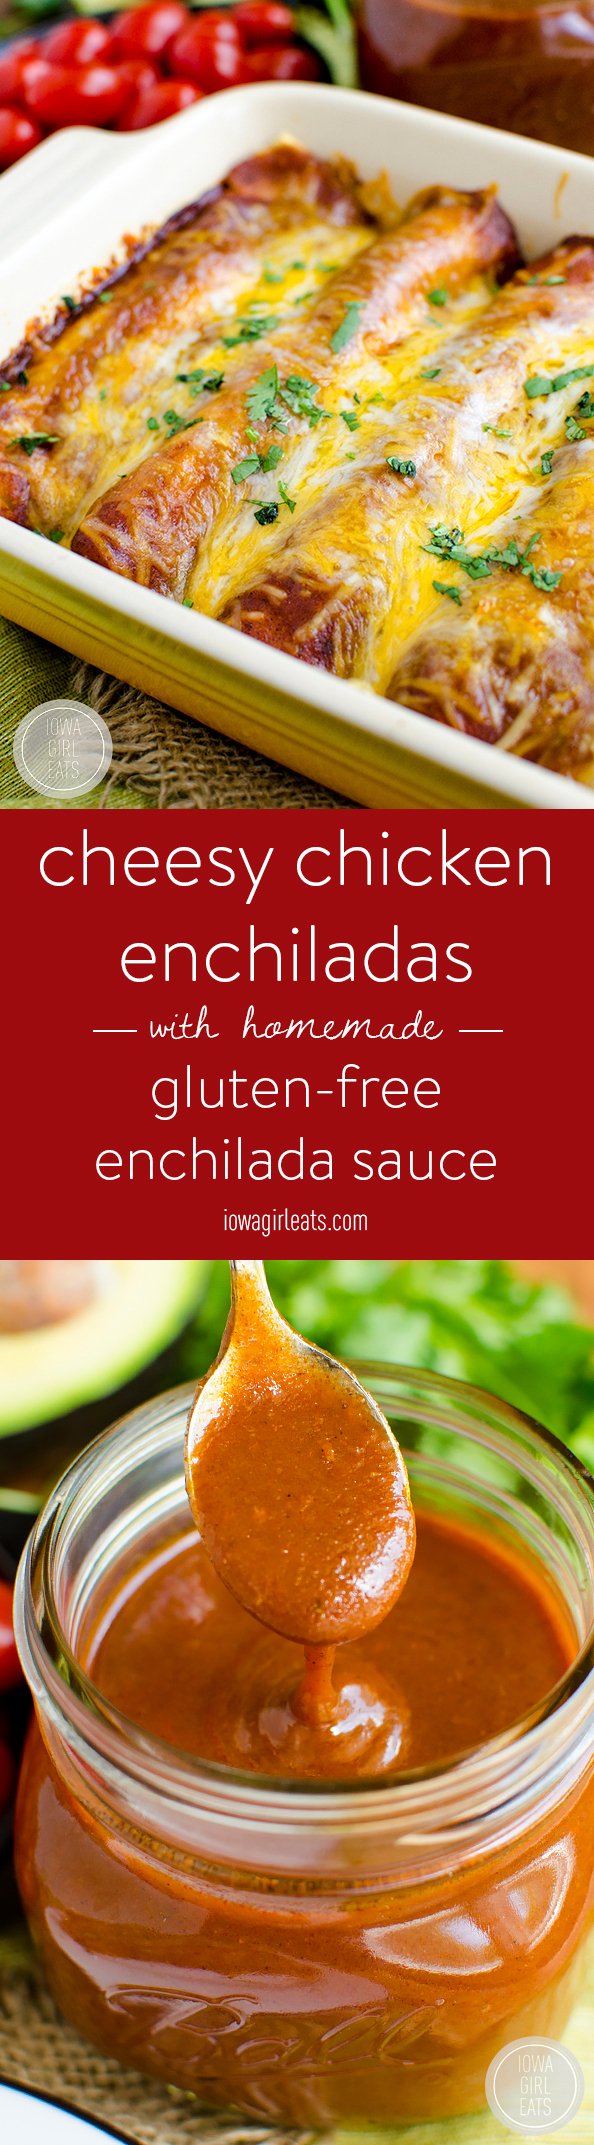 Photo collage of gluten free chicken enchiladas